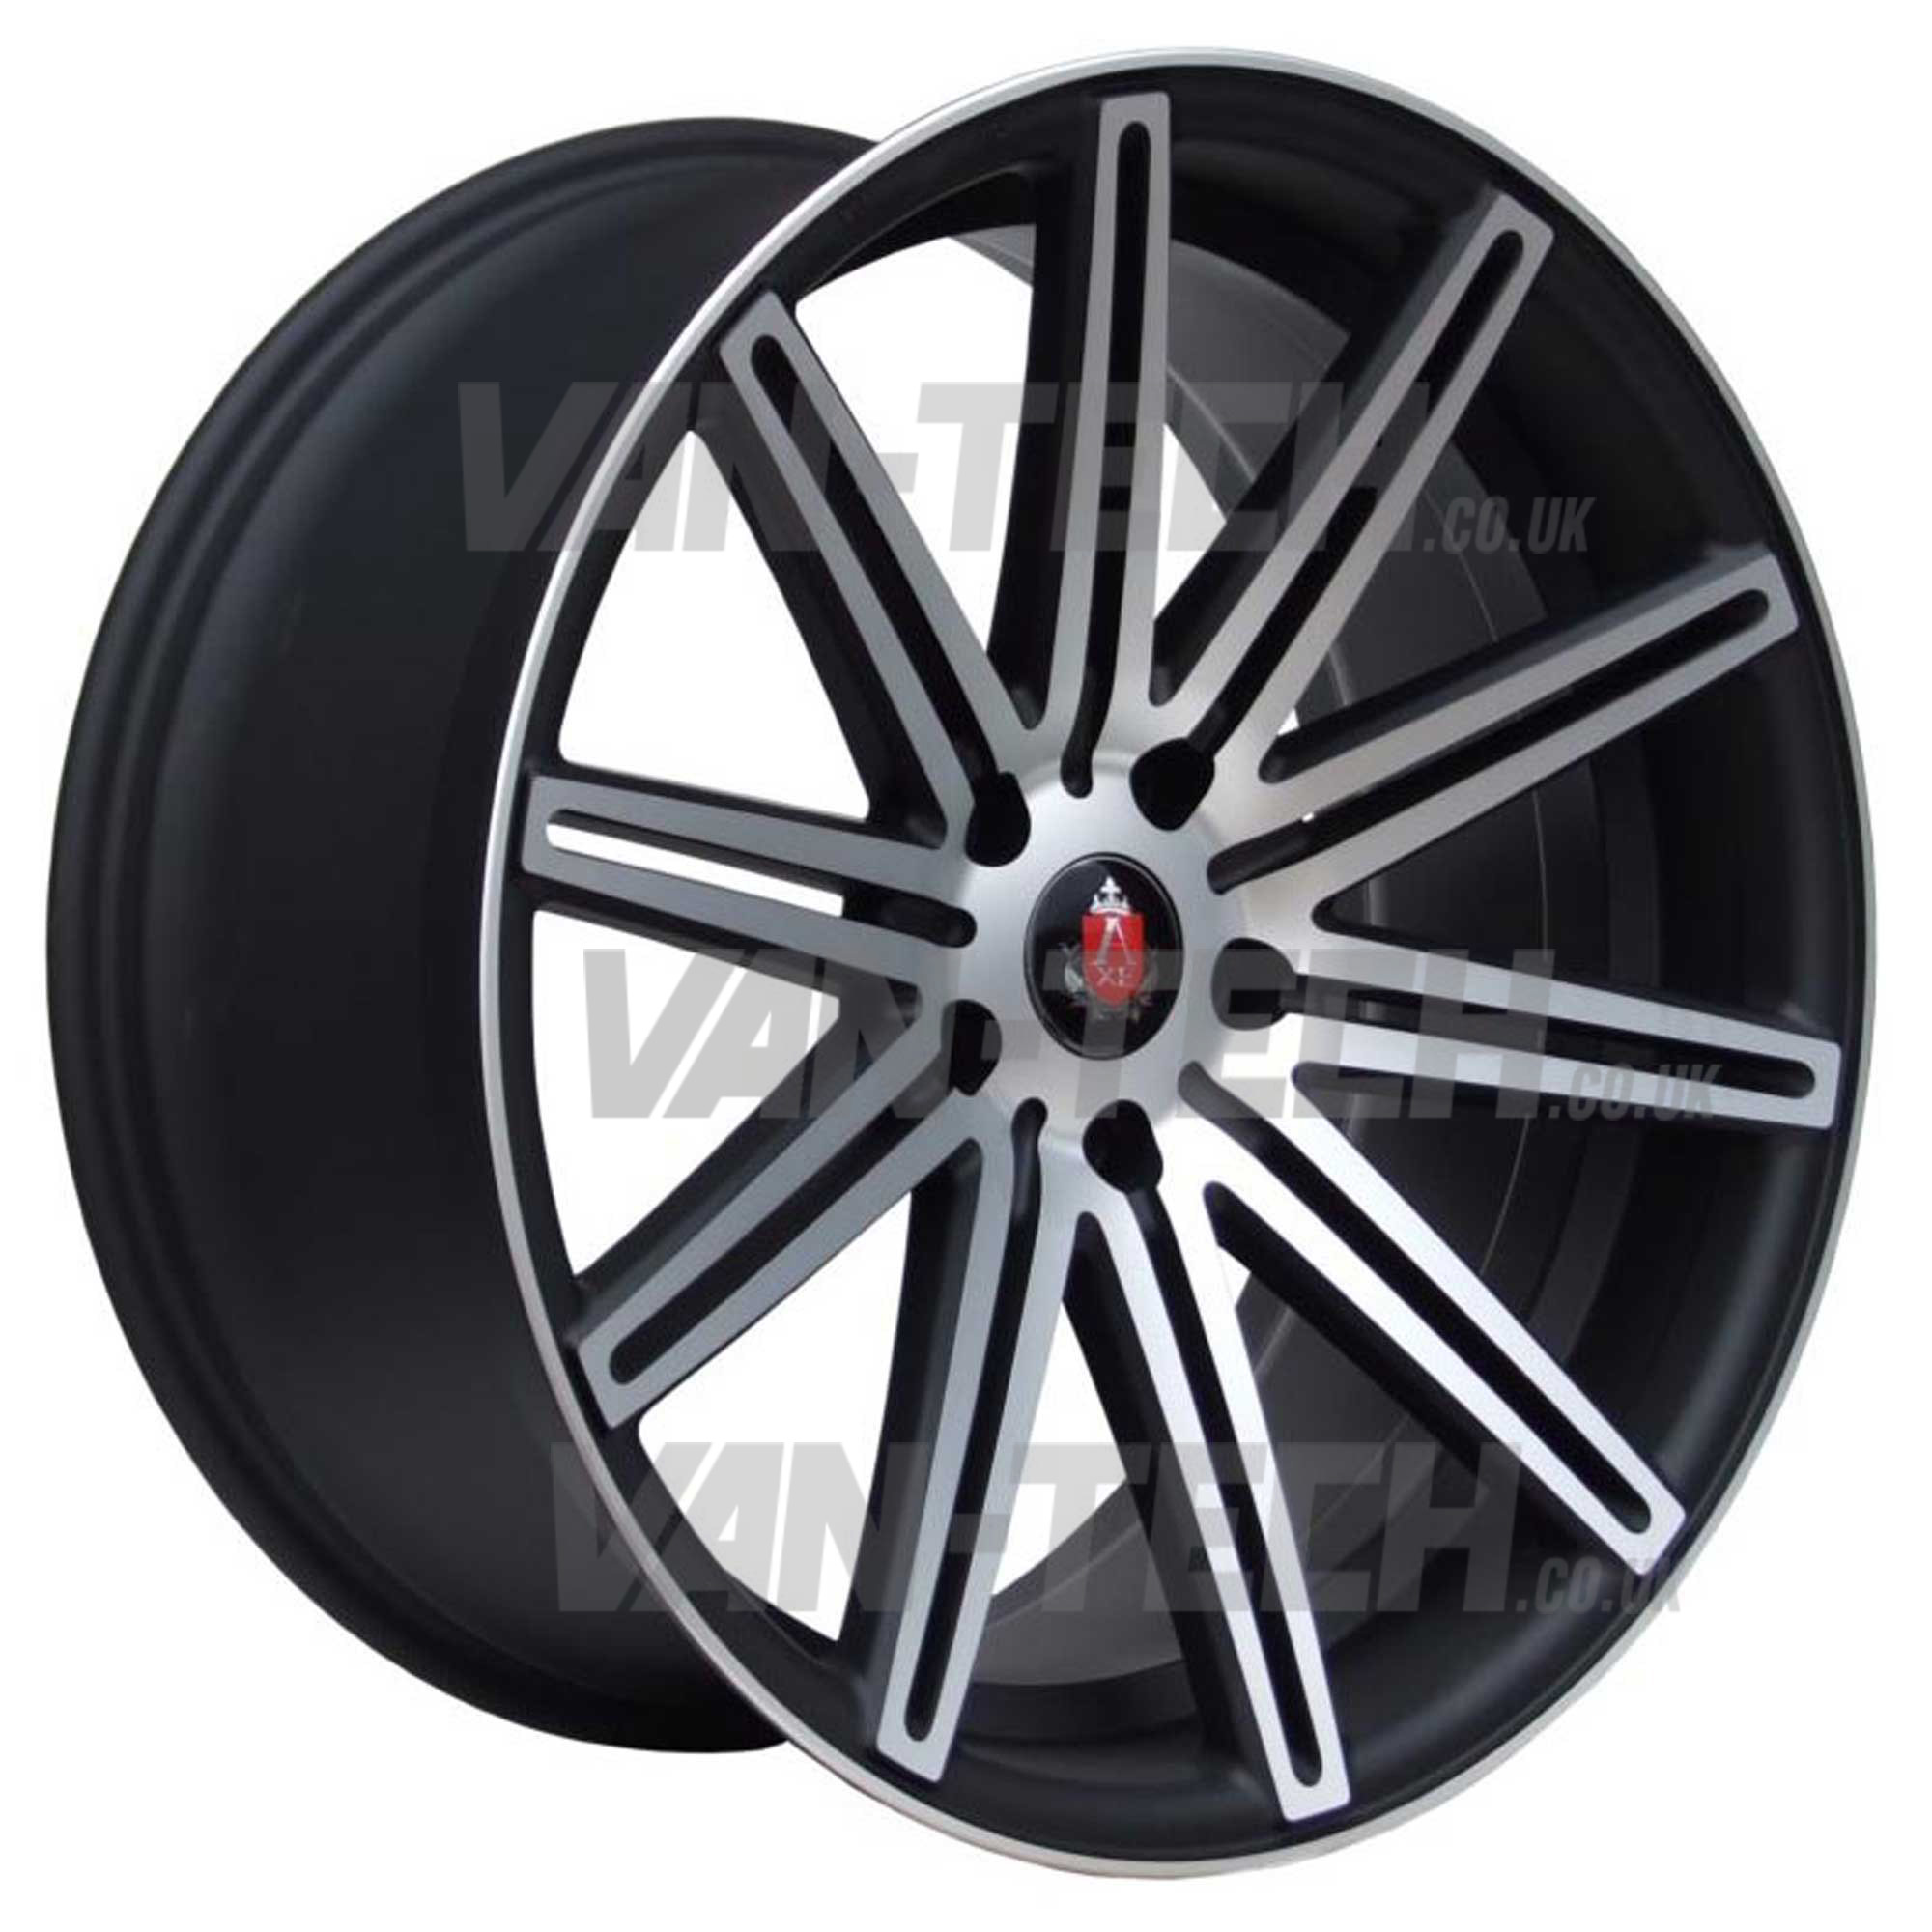 "VW T5 T5.1 T6 Axe EX-15 Alloy Wheels 20"" Black Polished"